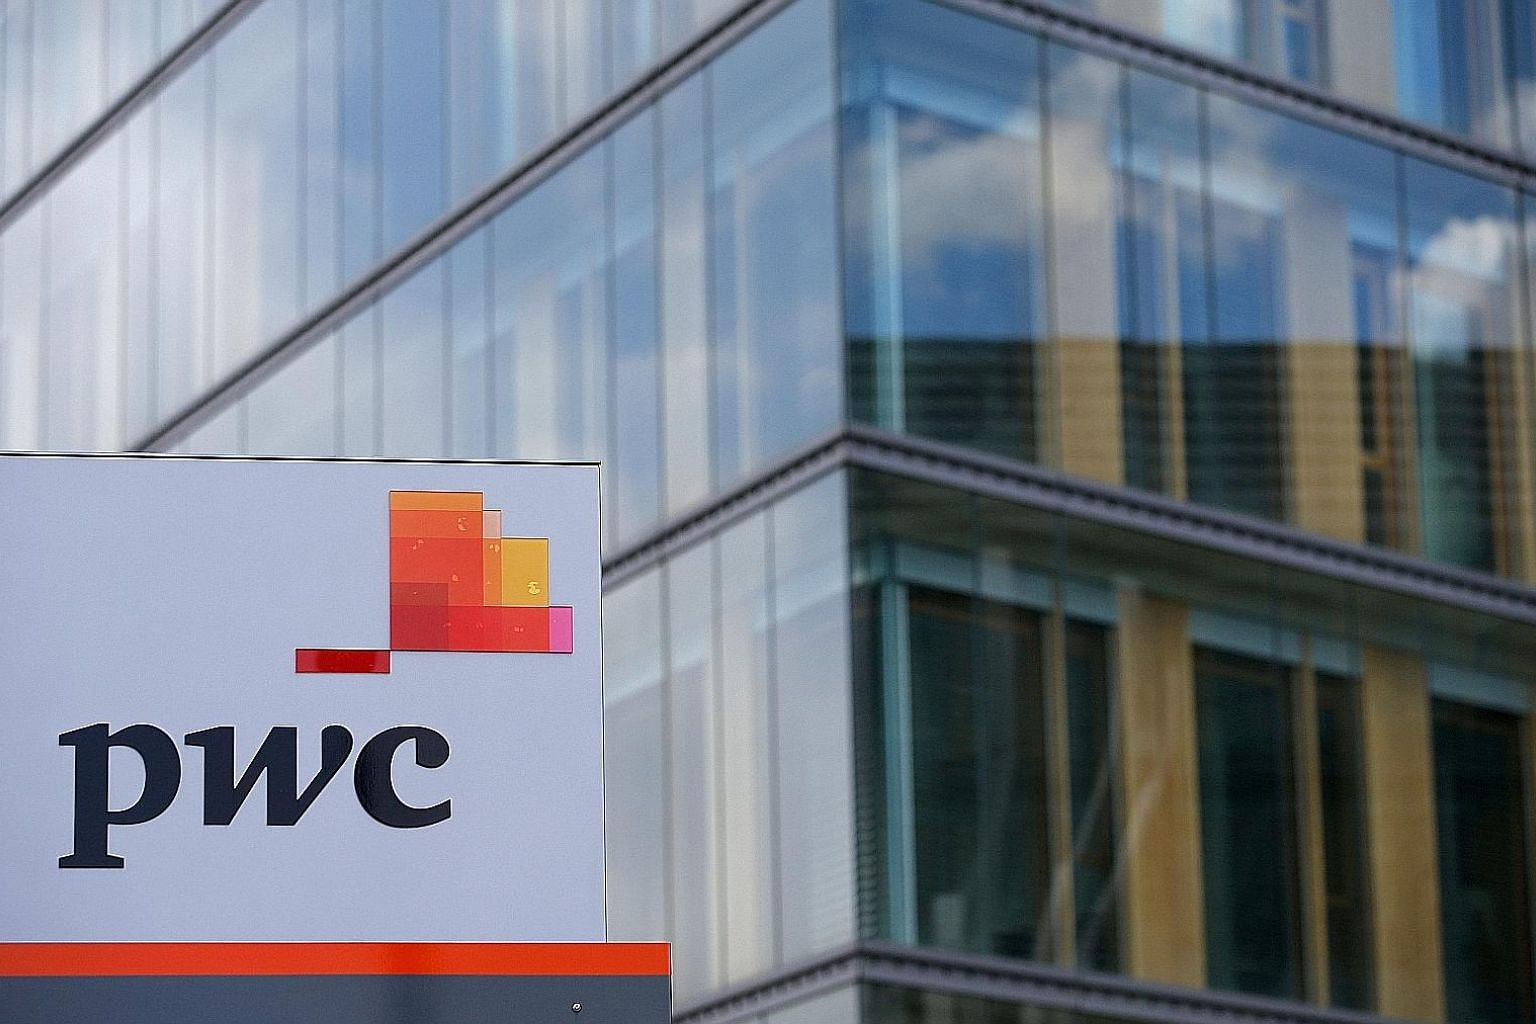 PwC had argued that the Federal Deposit Insurance Corp could recover US$306.7 million at most, and that no damages were justified because numerous Colonial employees had interfered with its audits.